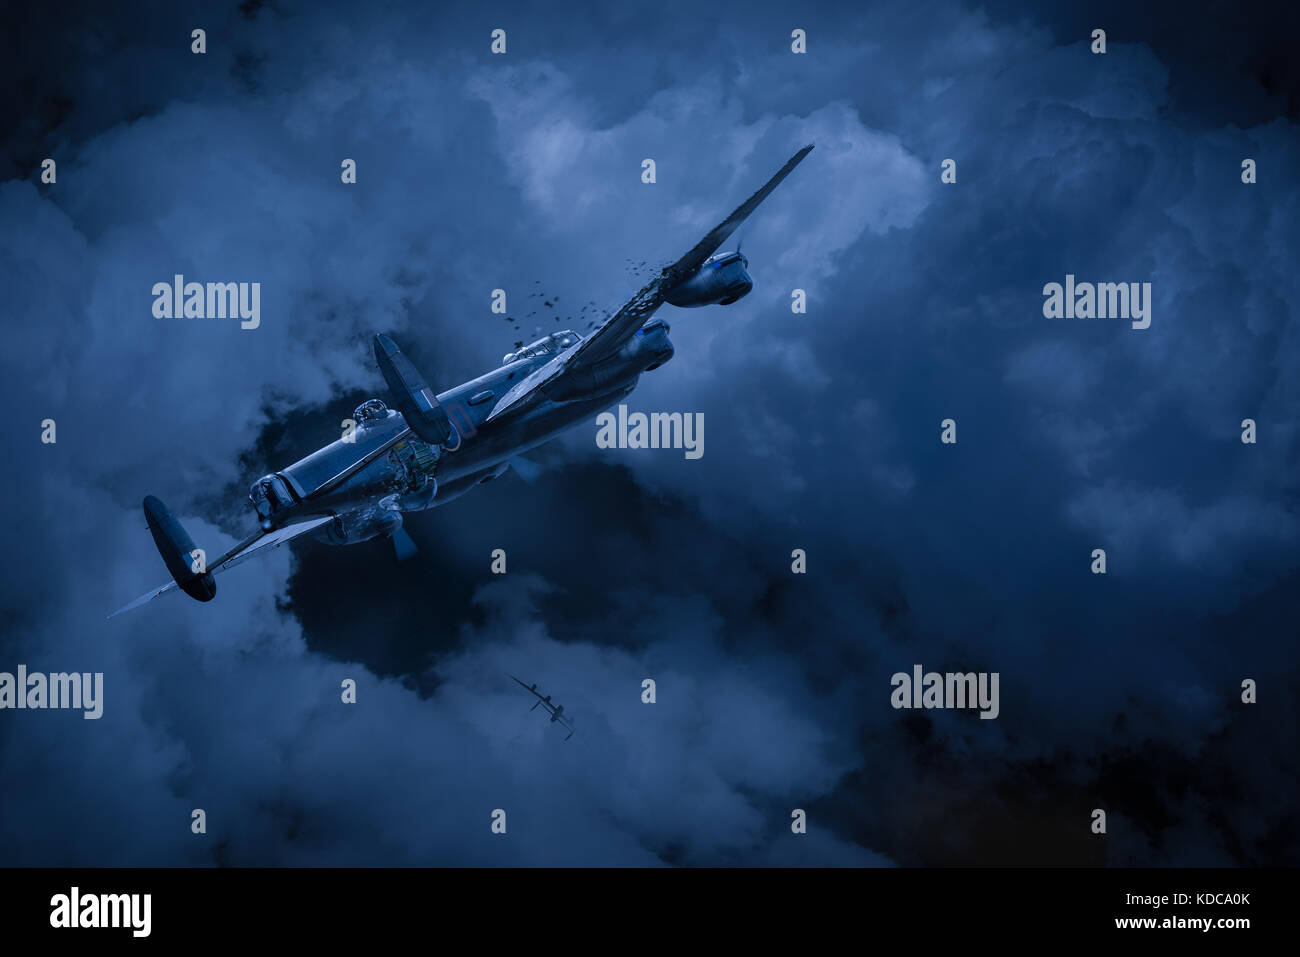 460 Squadron RAAF Lancaster ND968, AR-O 'Oboe' lurches violently into a downward spiral after being hit - Stock Image